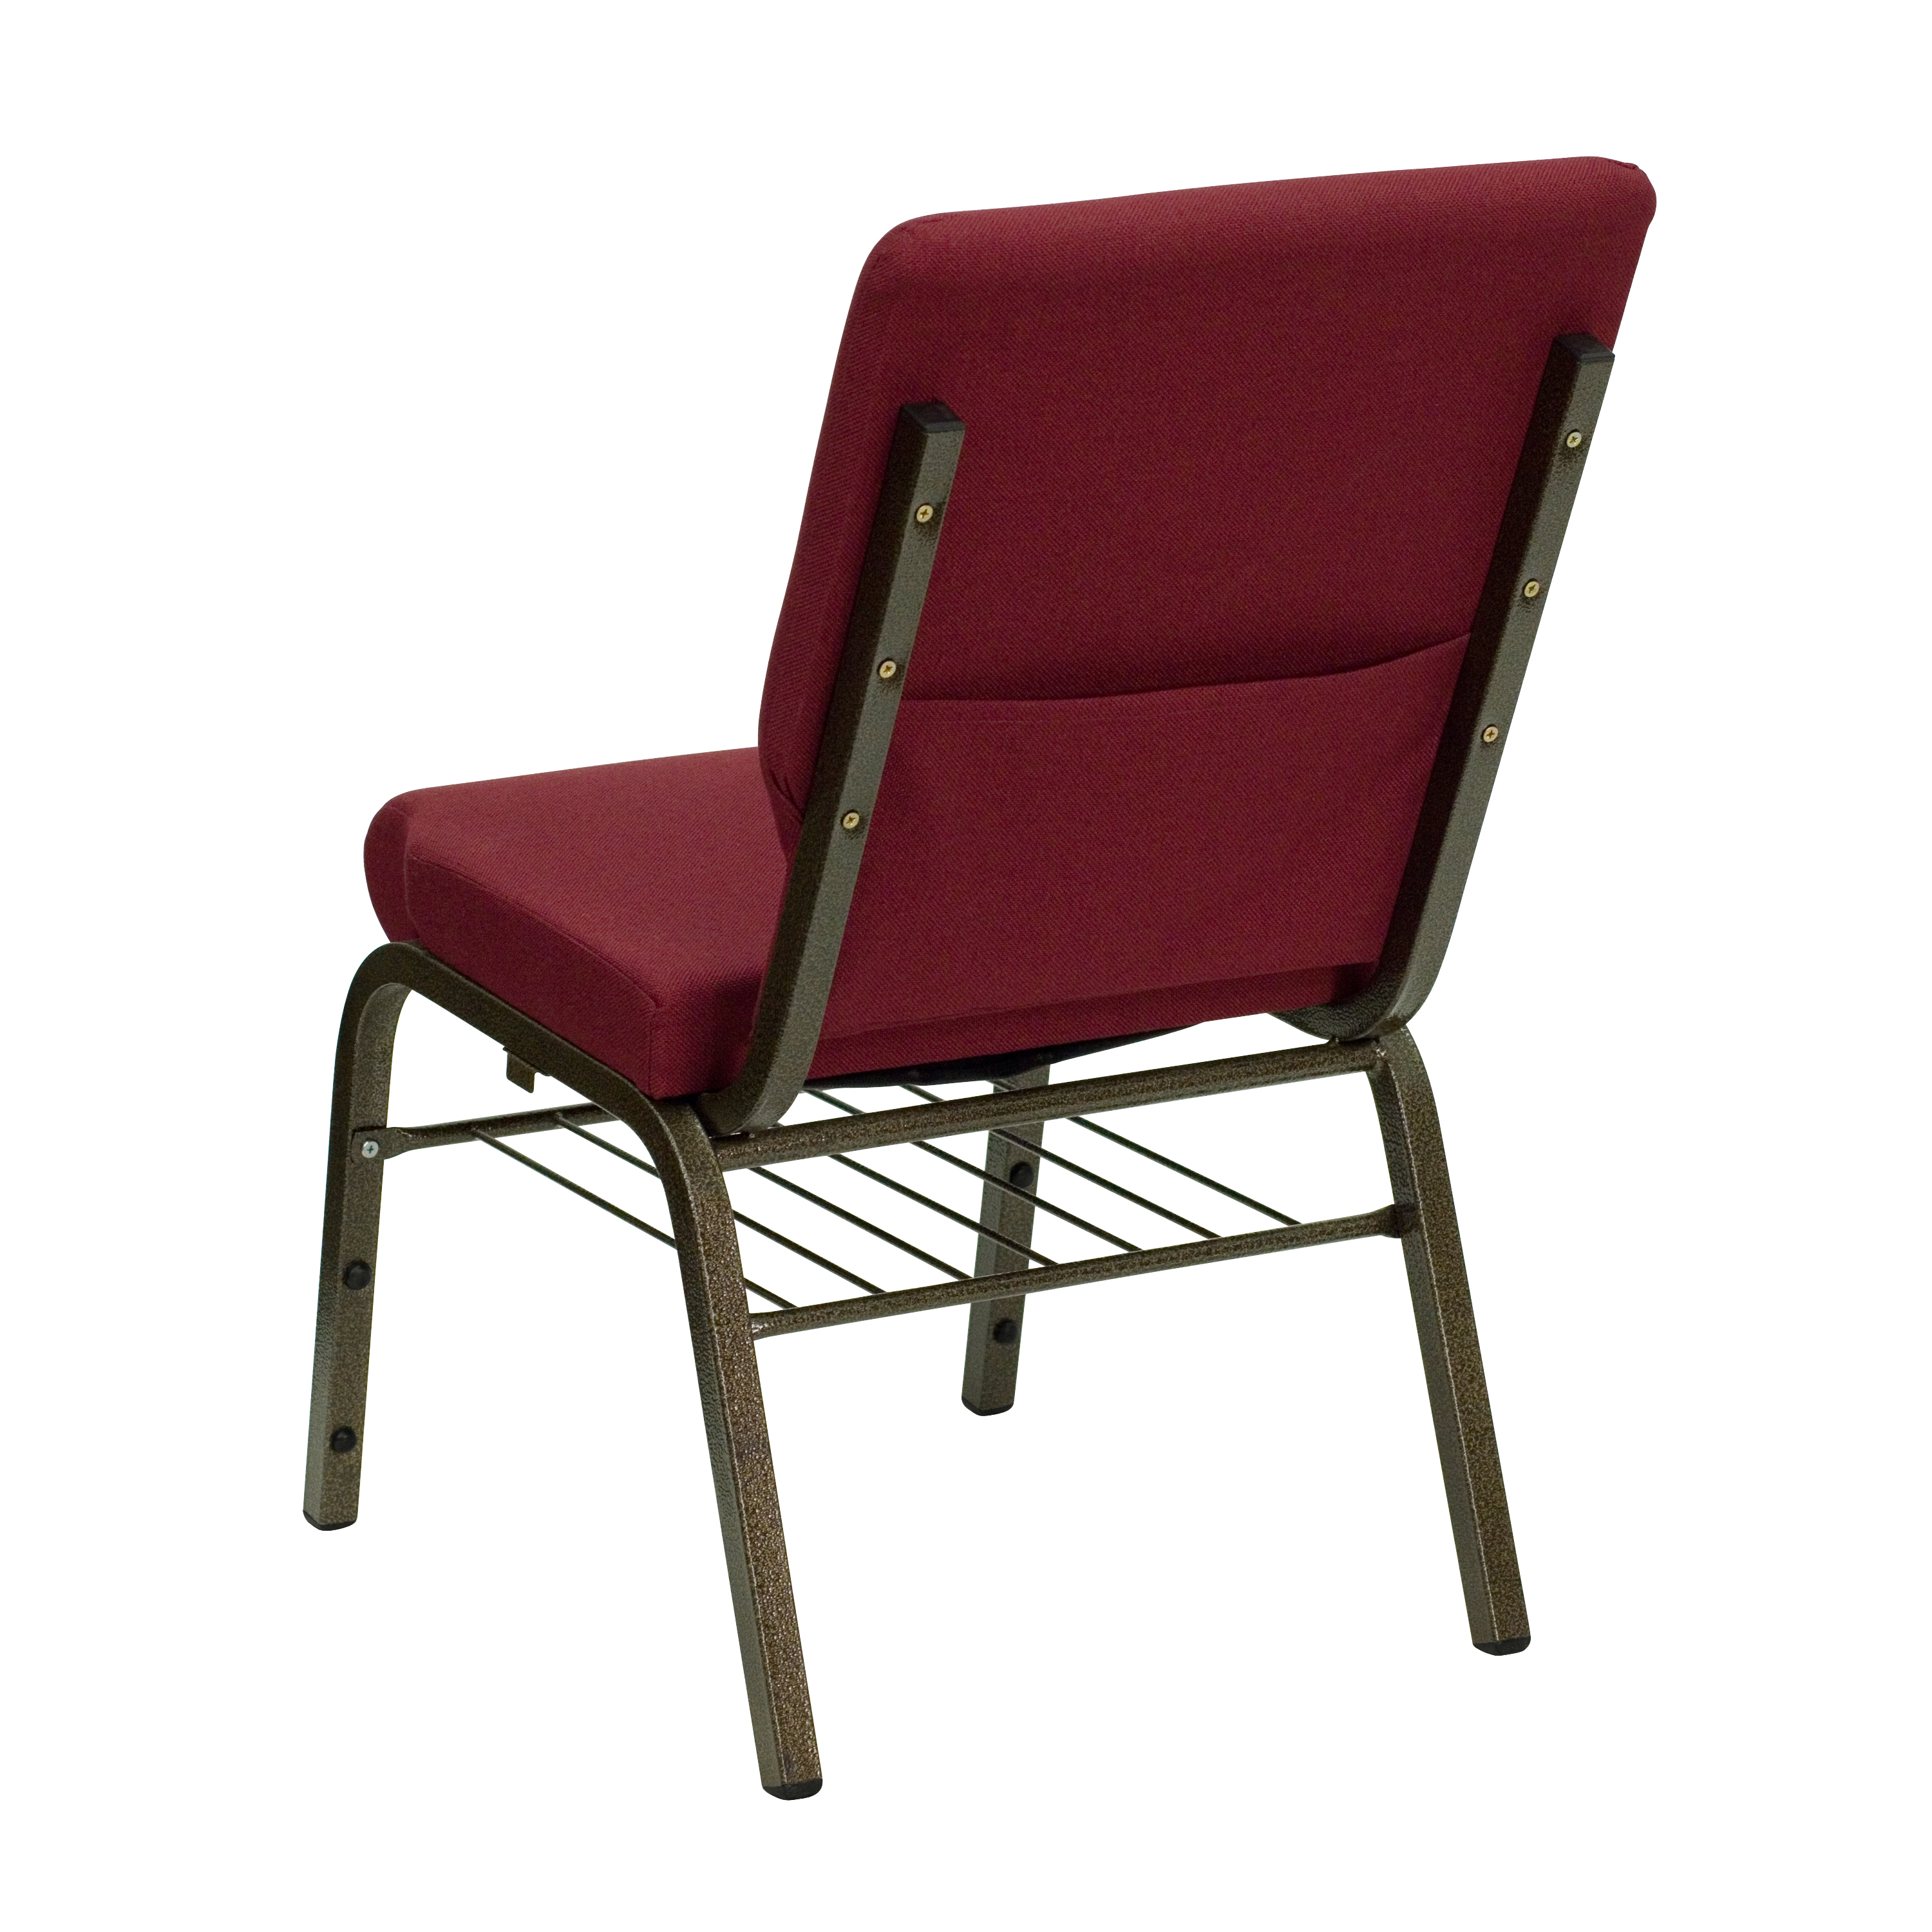 Pleasing Details About 18 5W Church Reception Guest Chair With Book Rack Machost Co Dining Chair Design Ideas Machostcouk